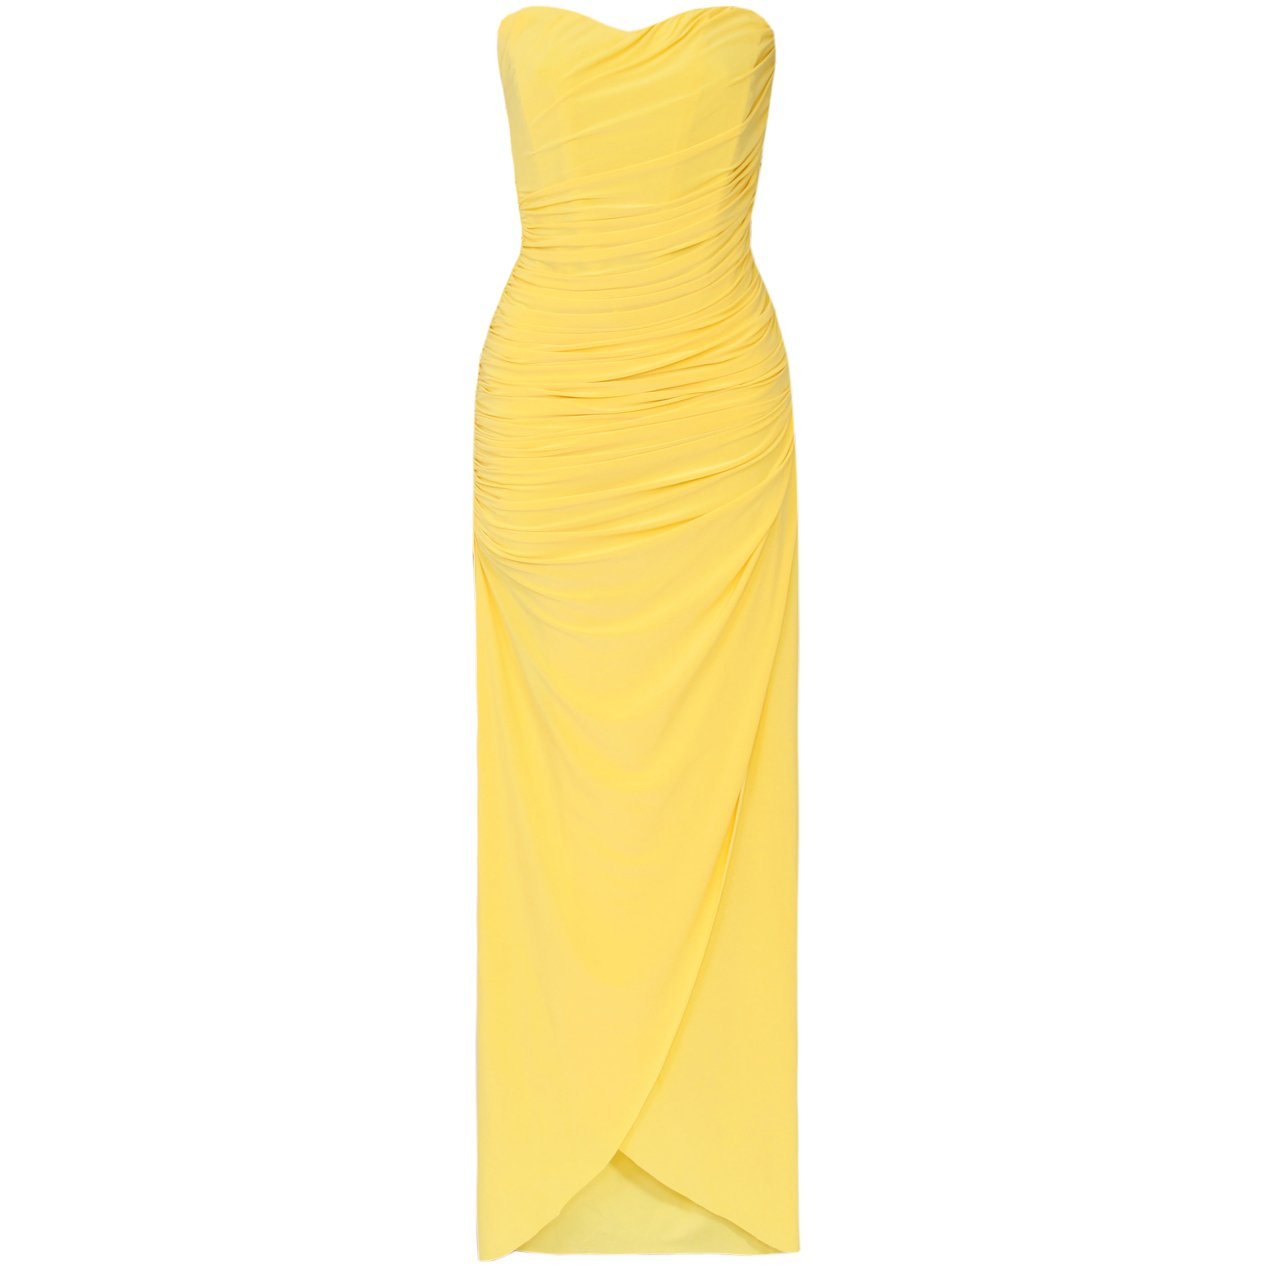 WOMENS LADIES YELLOW STRAPLESS LONG SUMMER EVENING CORSET PARTY PROM GOWN MAXI DRESS UK 12, US 8